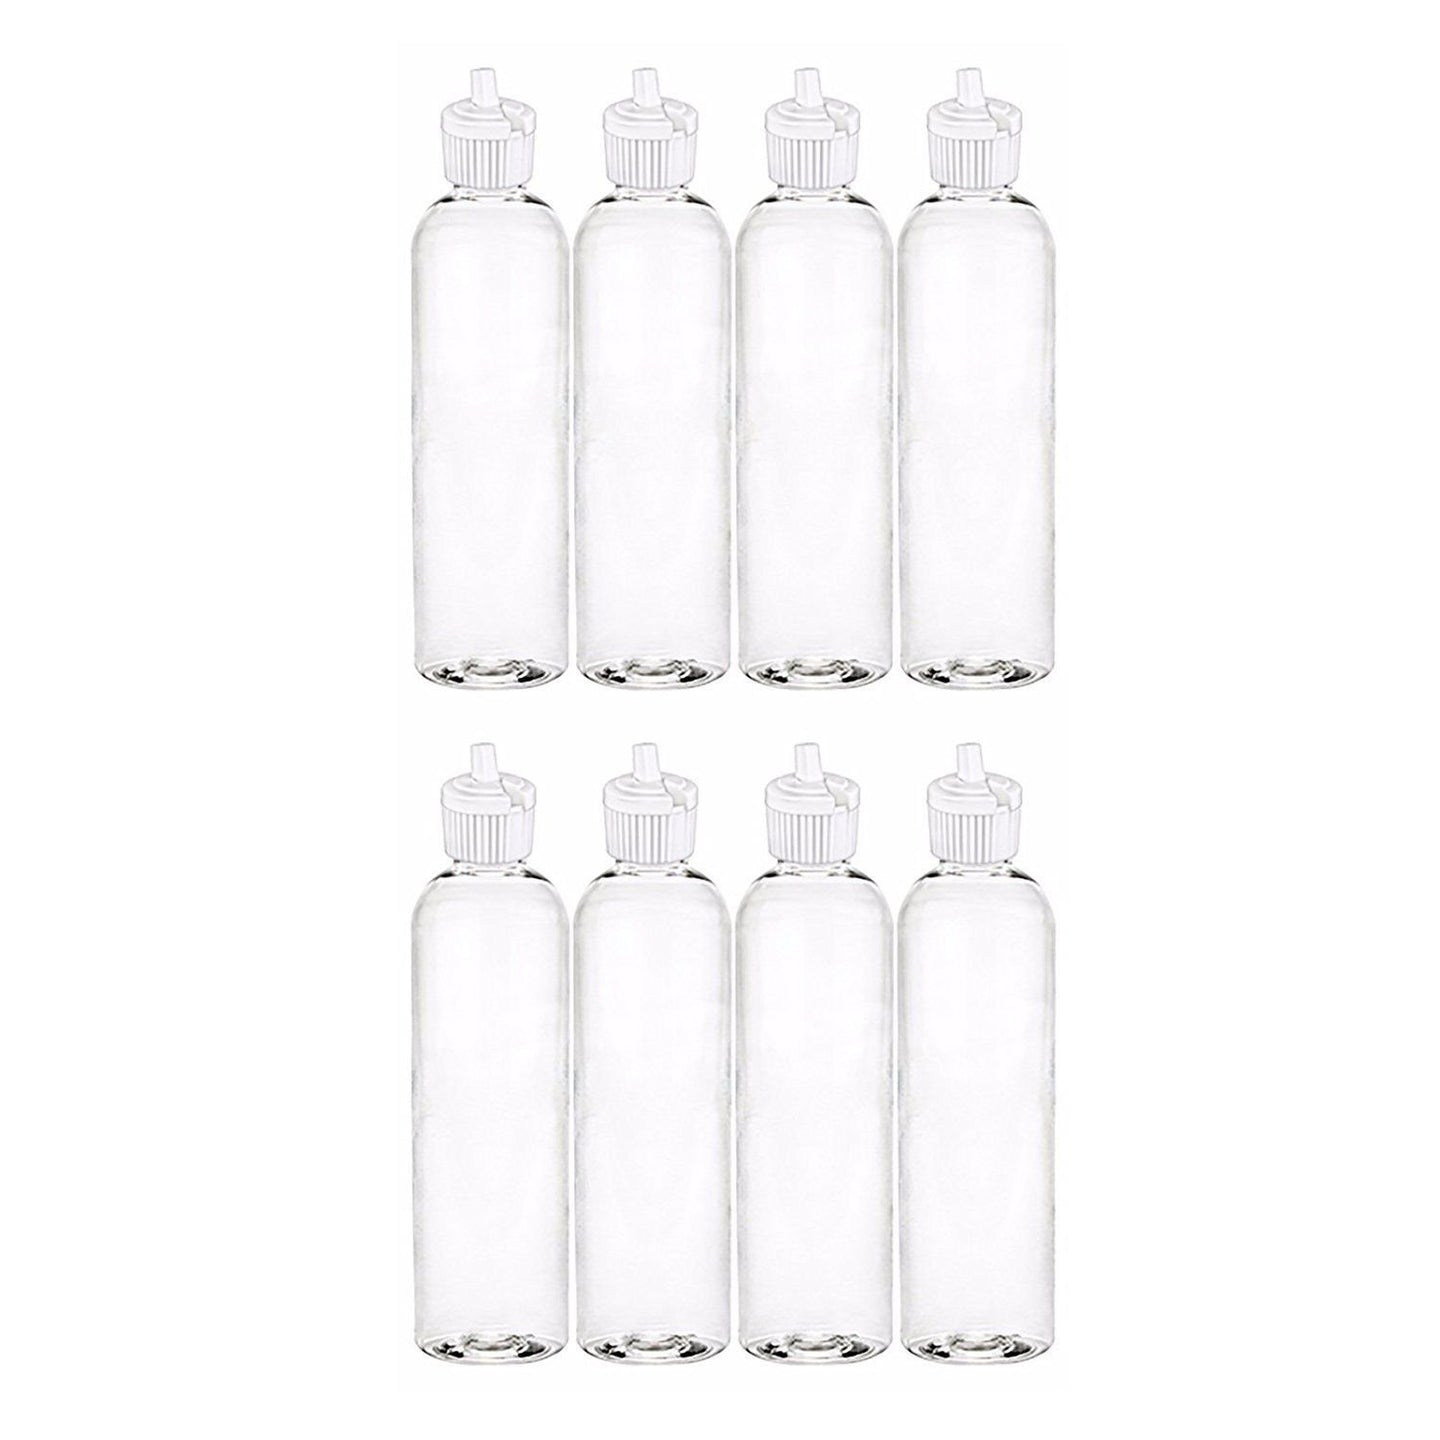 MoYo Natural Labs 4 oz Squirt Bottles, Squeezable Empty Travel Containers, BPA Free PET Plastic for Essential Oils and Liquids, Toiletry/Cosmetic Bottles (Neck 20-410) (Pack of 8, Clear)